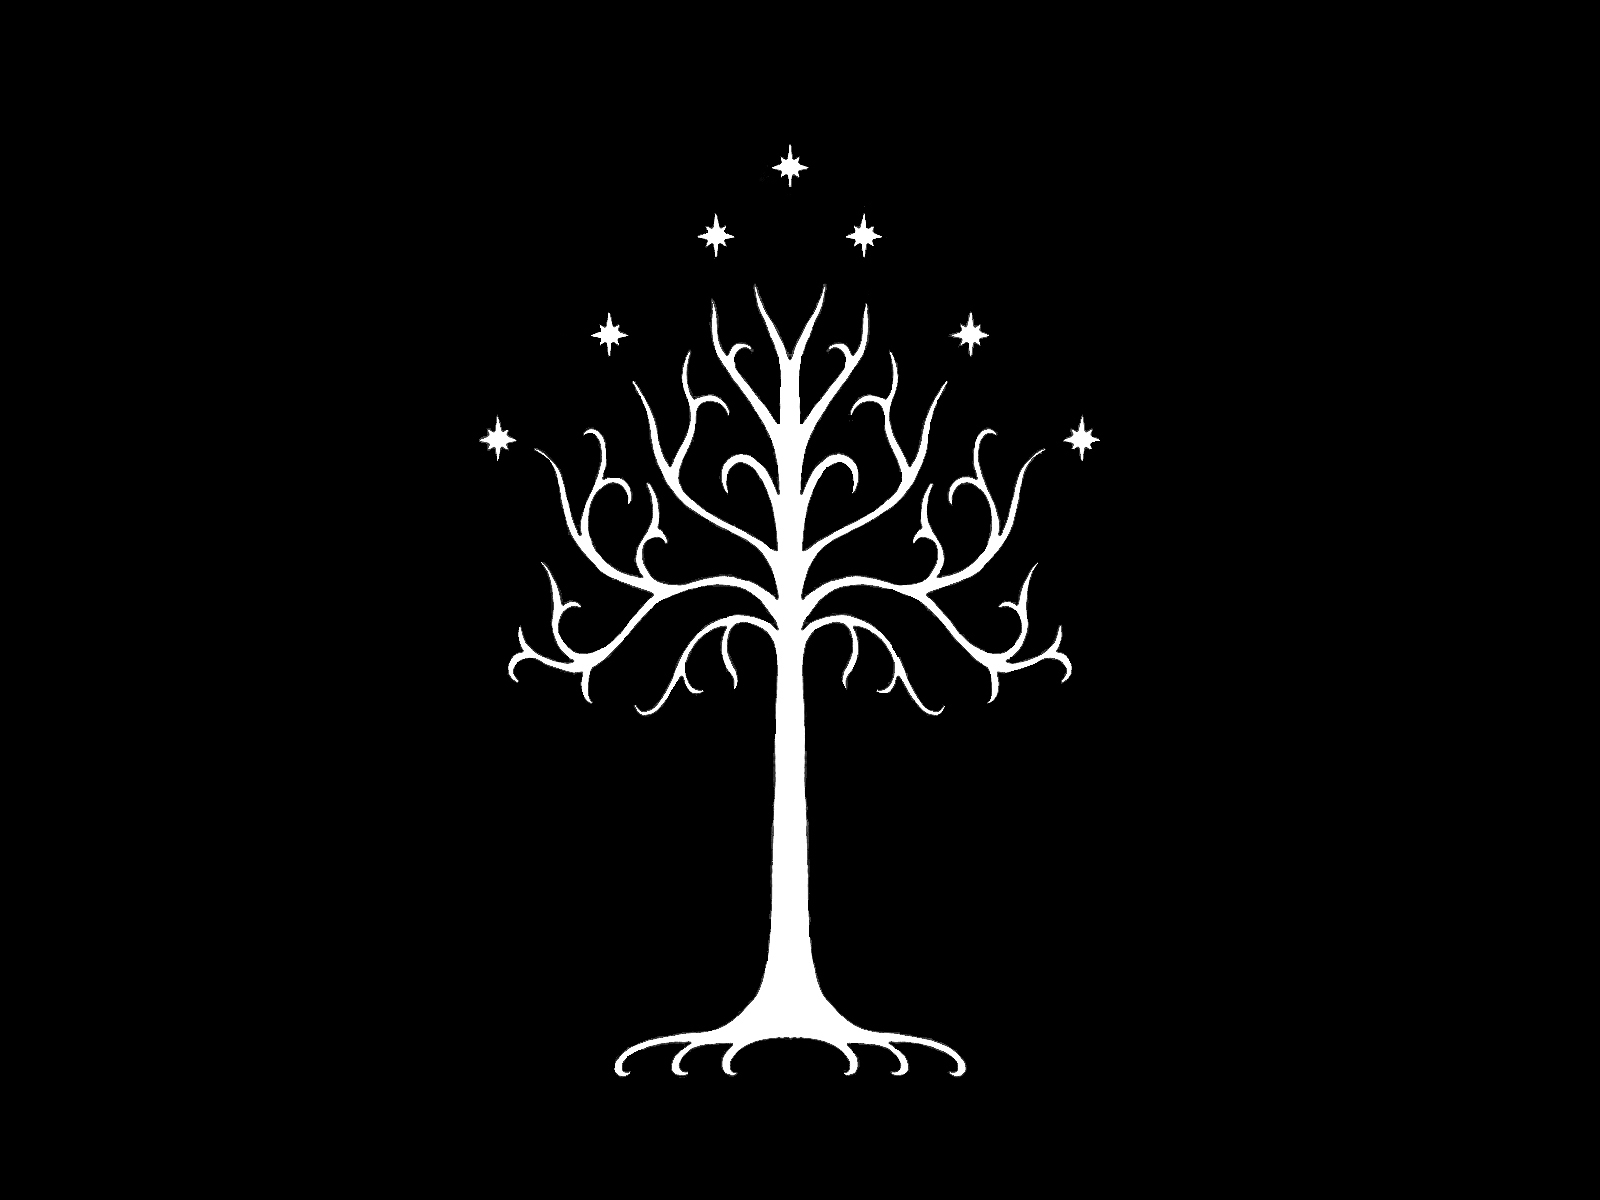 Trees The Lord Of The Rings Gondor Wallpaper 1600x1200